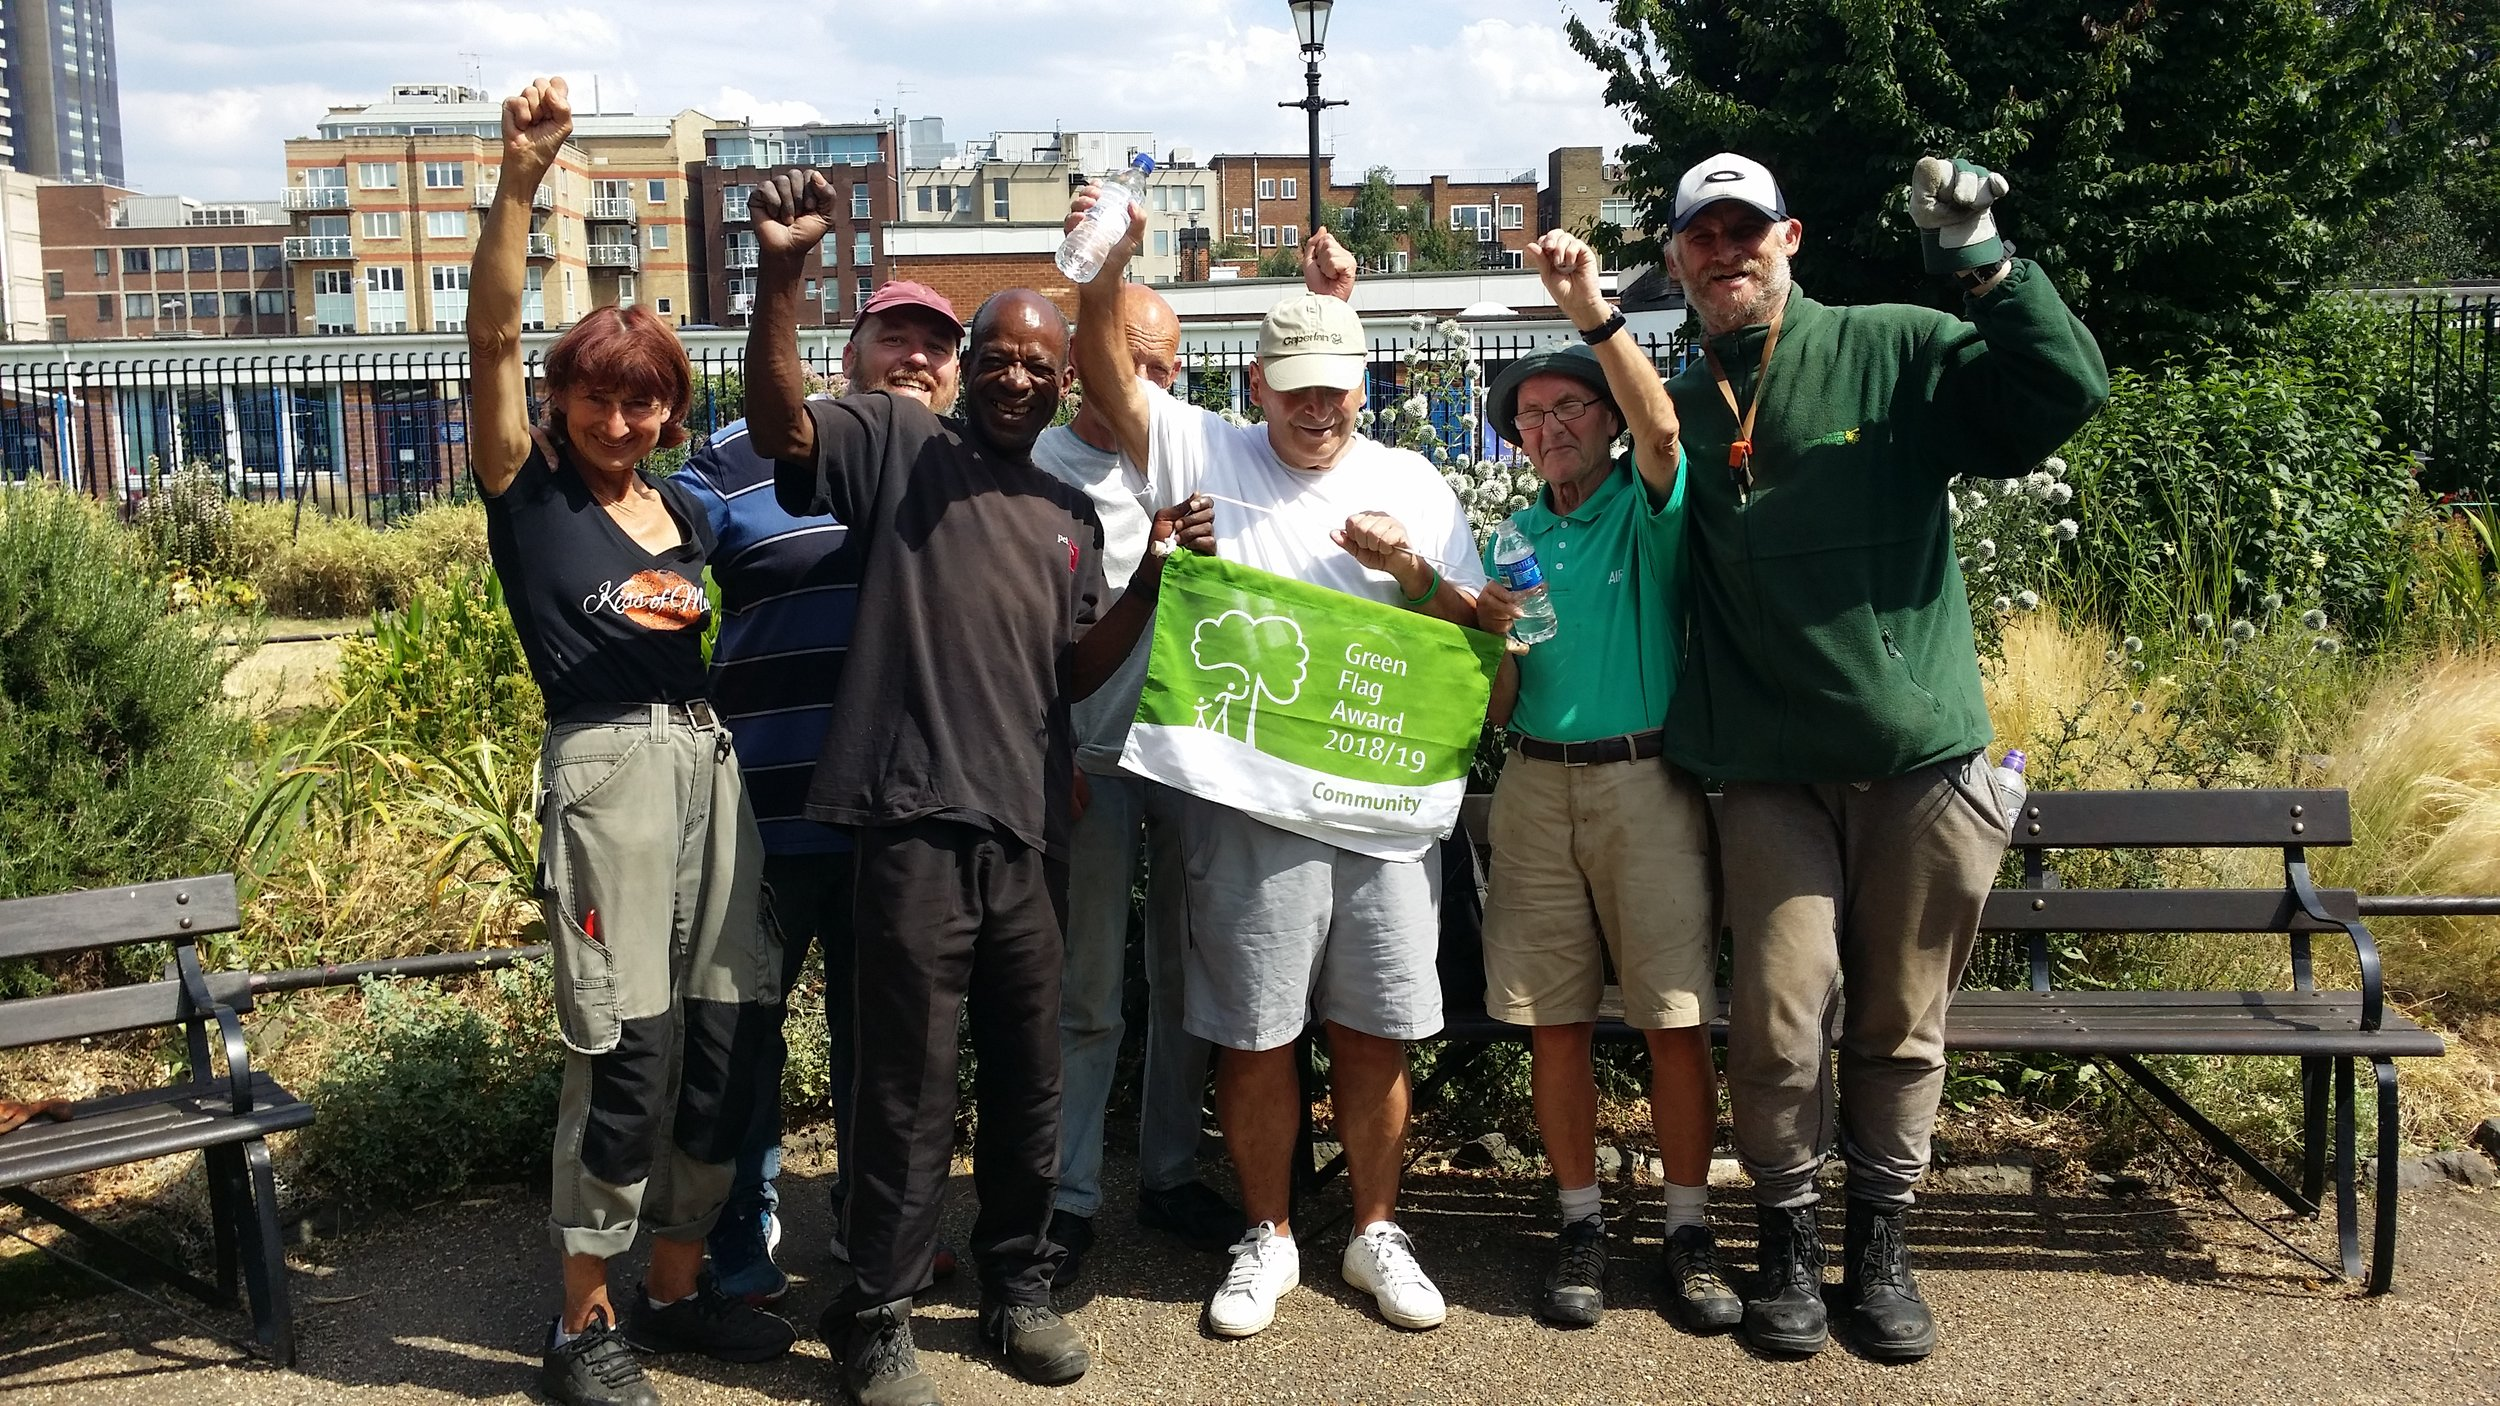 Our volunteers celebrate Red Cross Garden's Green Flag Award.